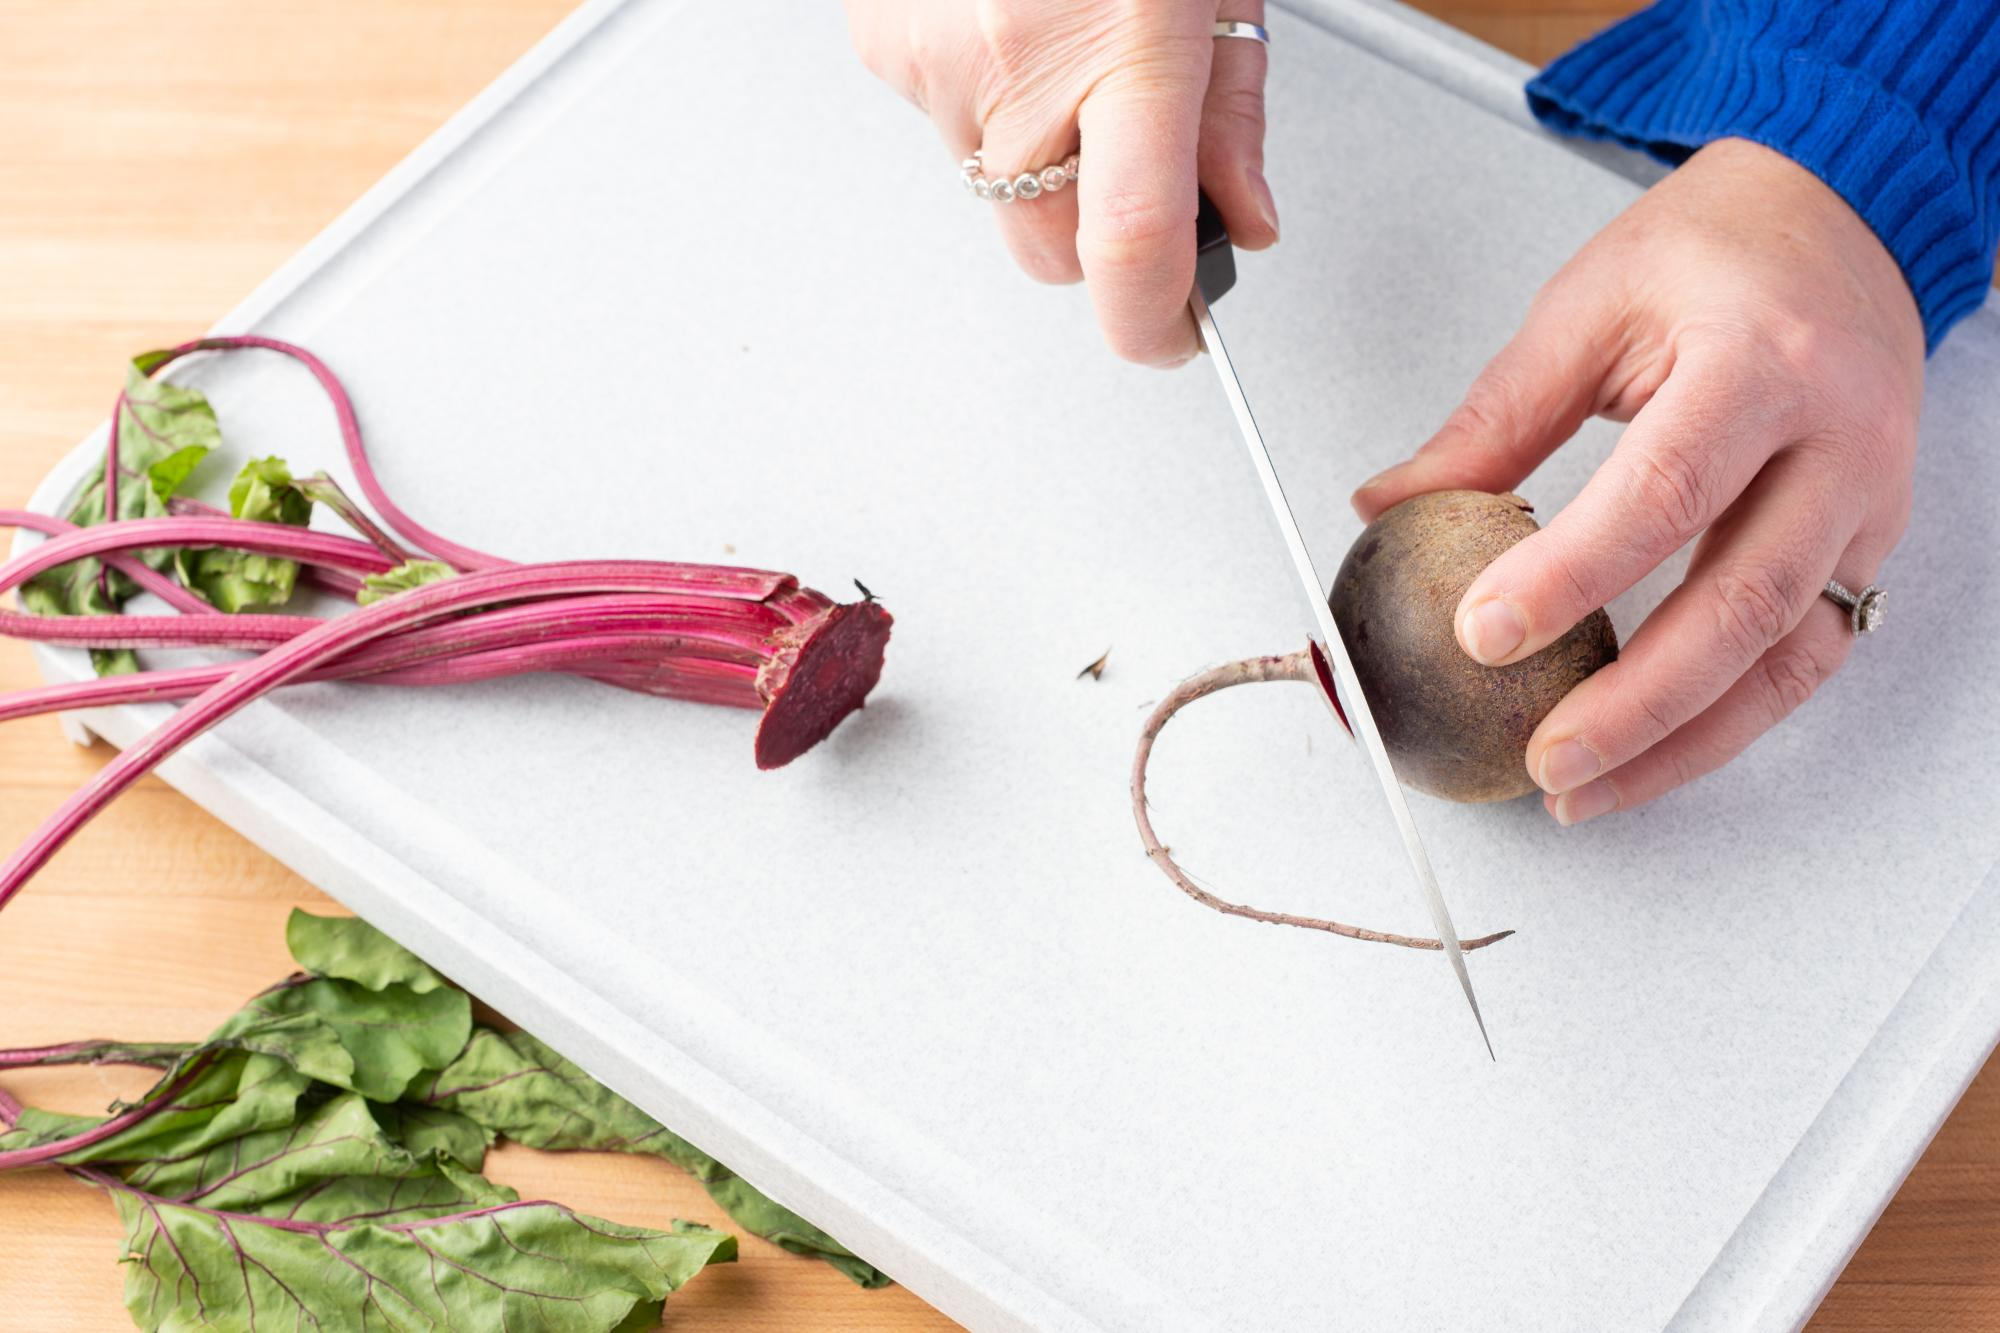 Trimming the ends of the beet with a Hardy Slicer.